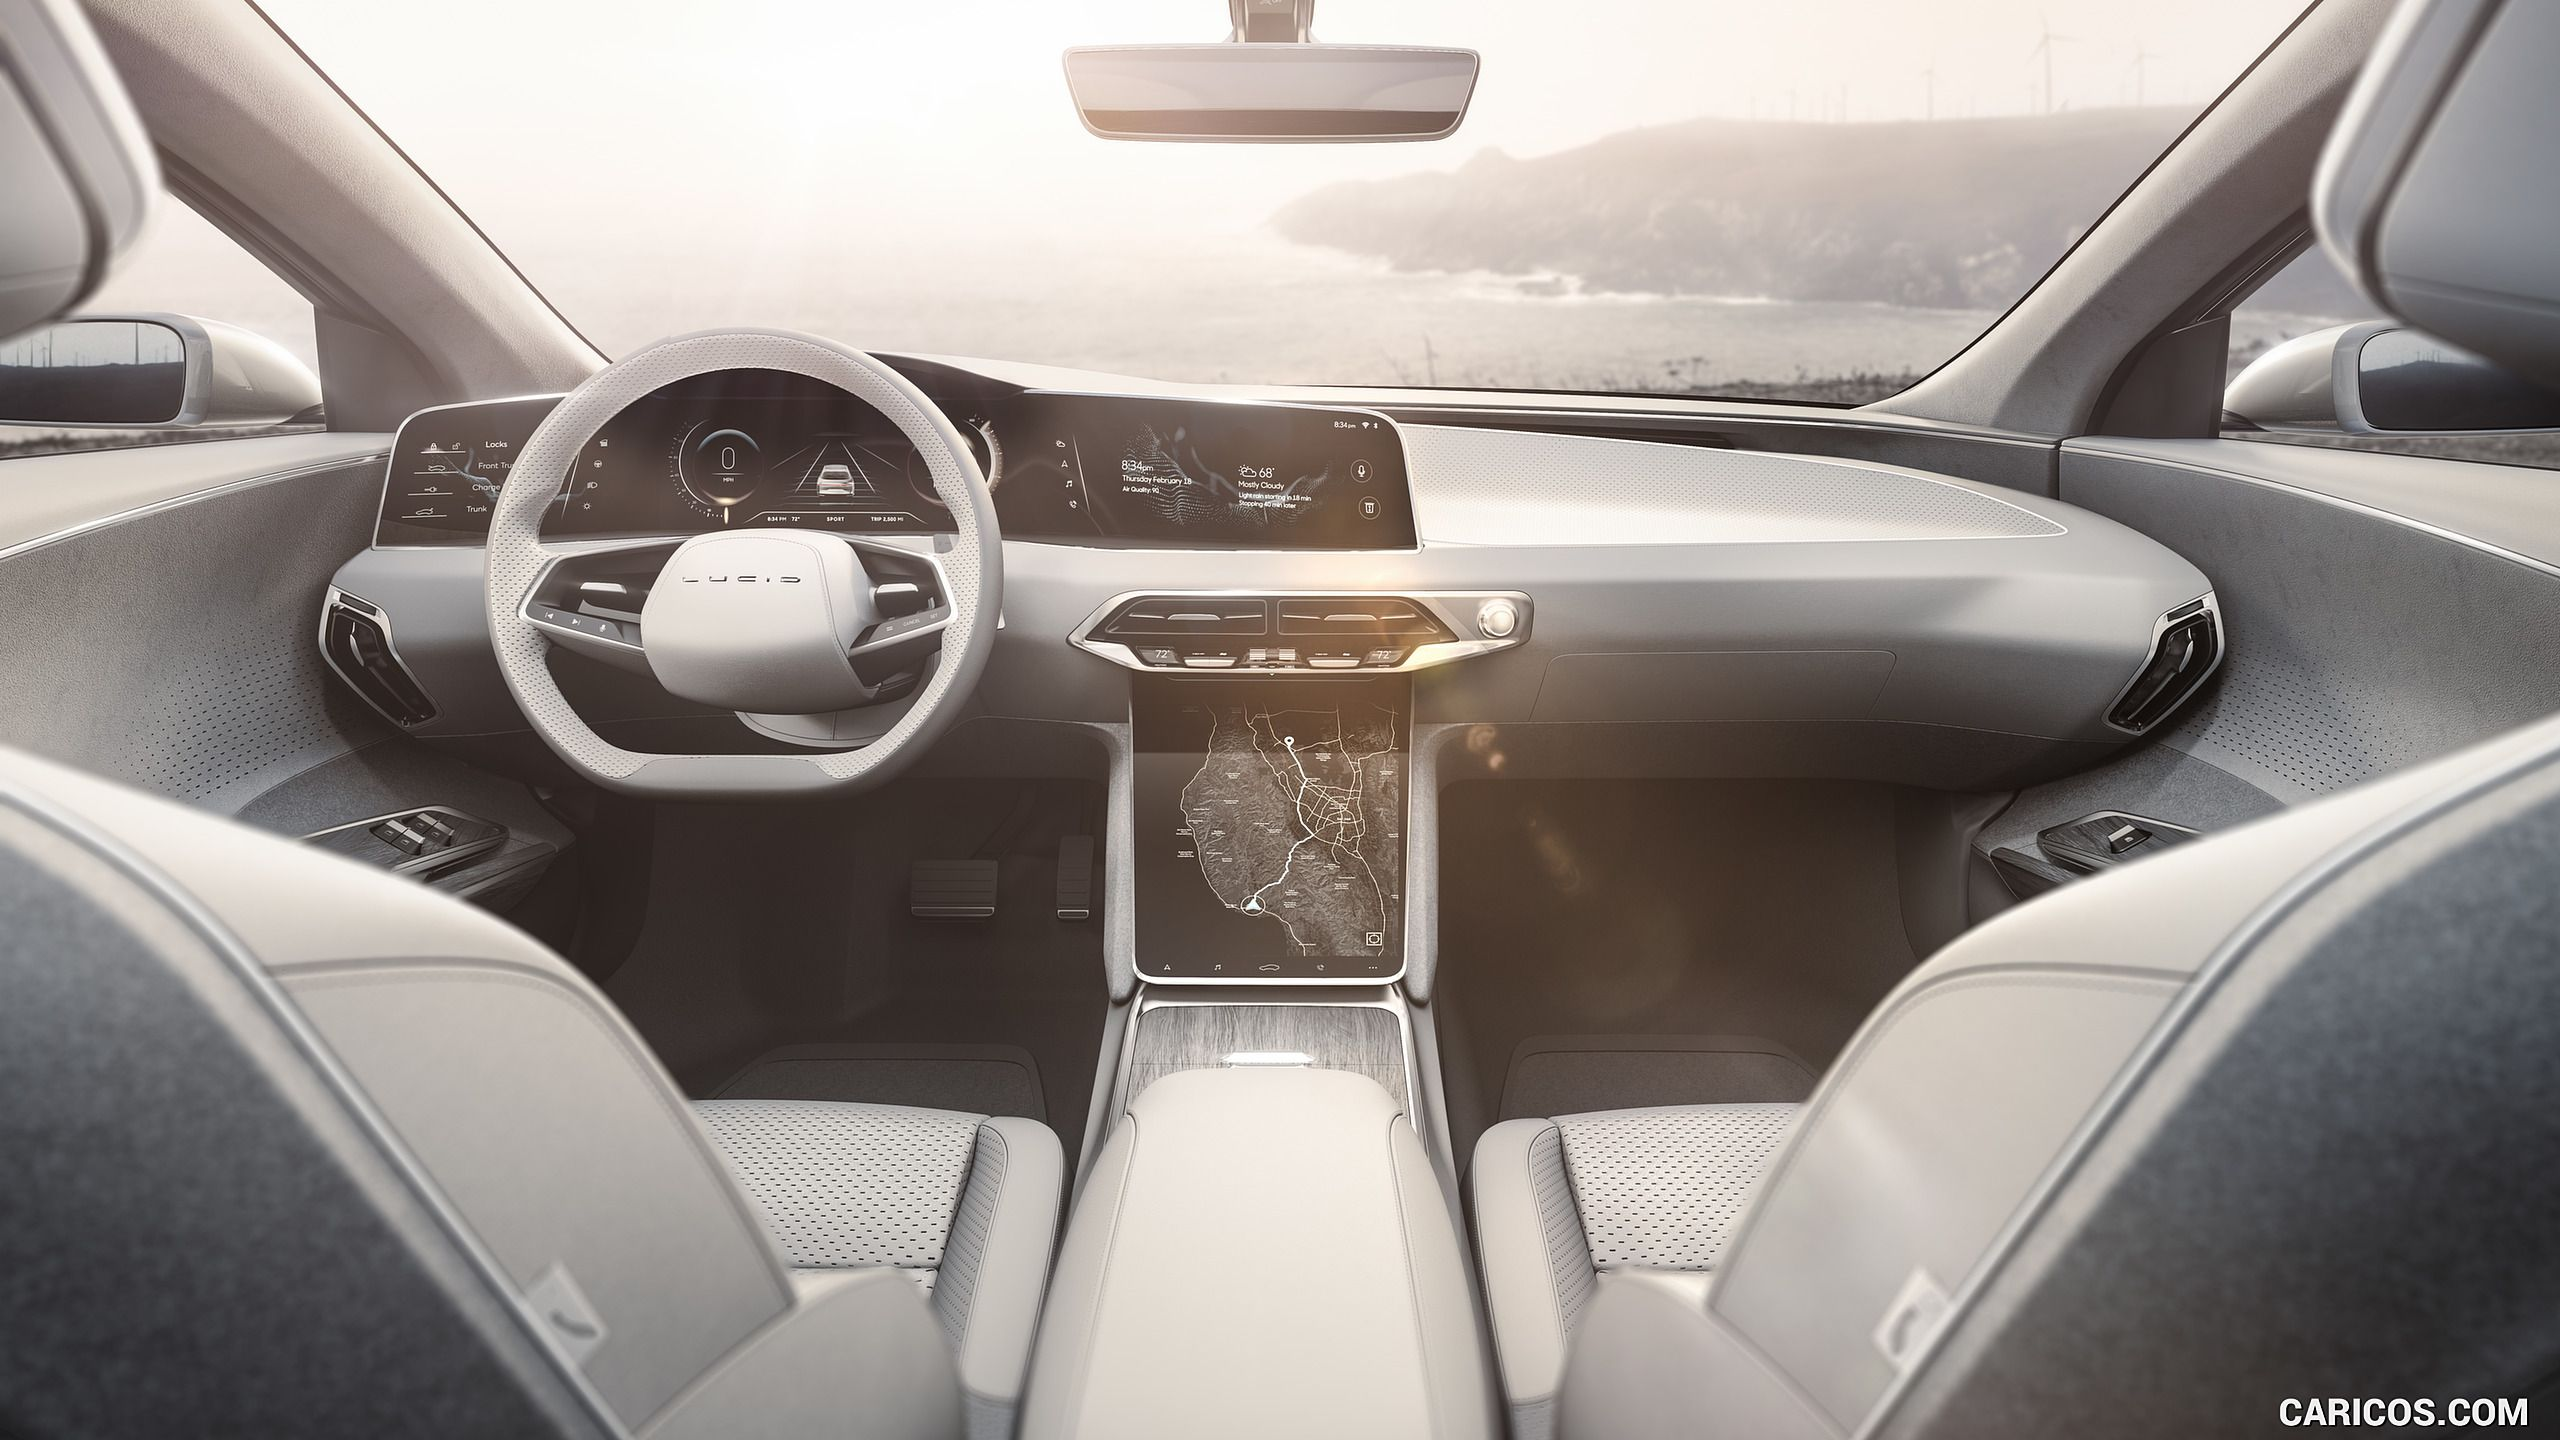 2019 Lucid Air Wallpaper Car Design Car Interior Sketch